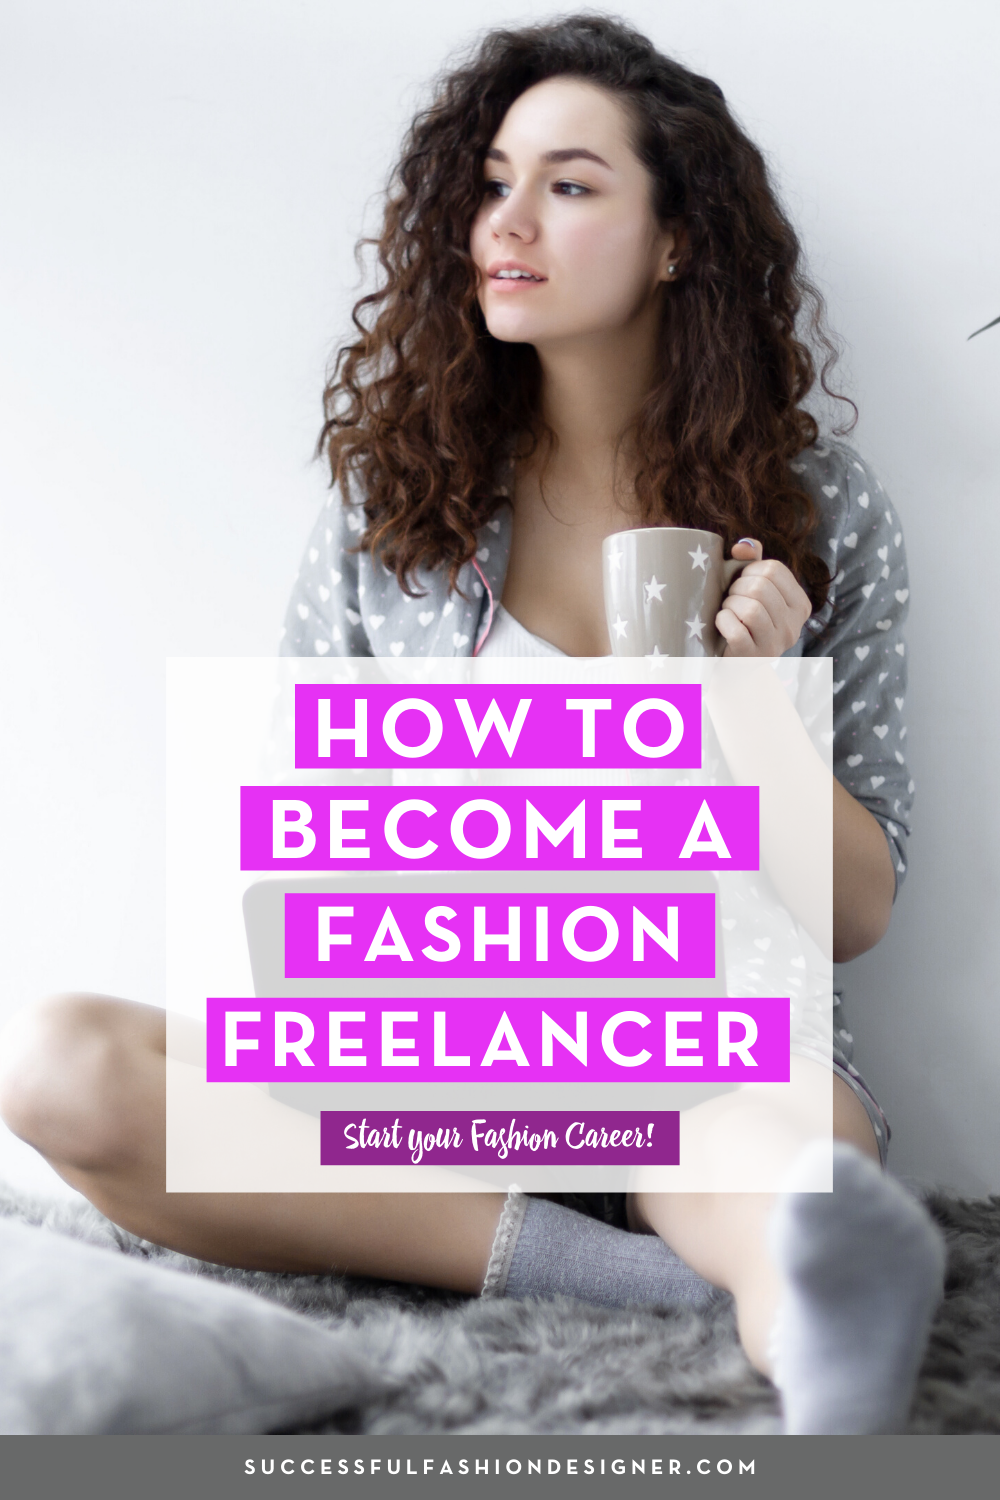 How To Become A Fashion Freelancer Career In Fashion Designing Fashion Design Jobs Fashion Design